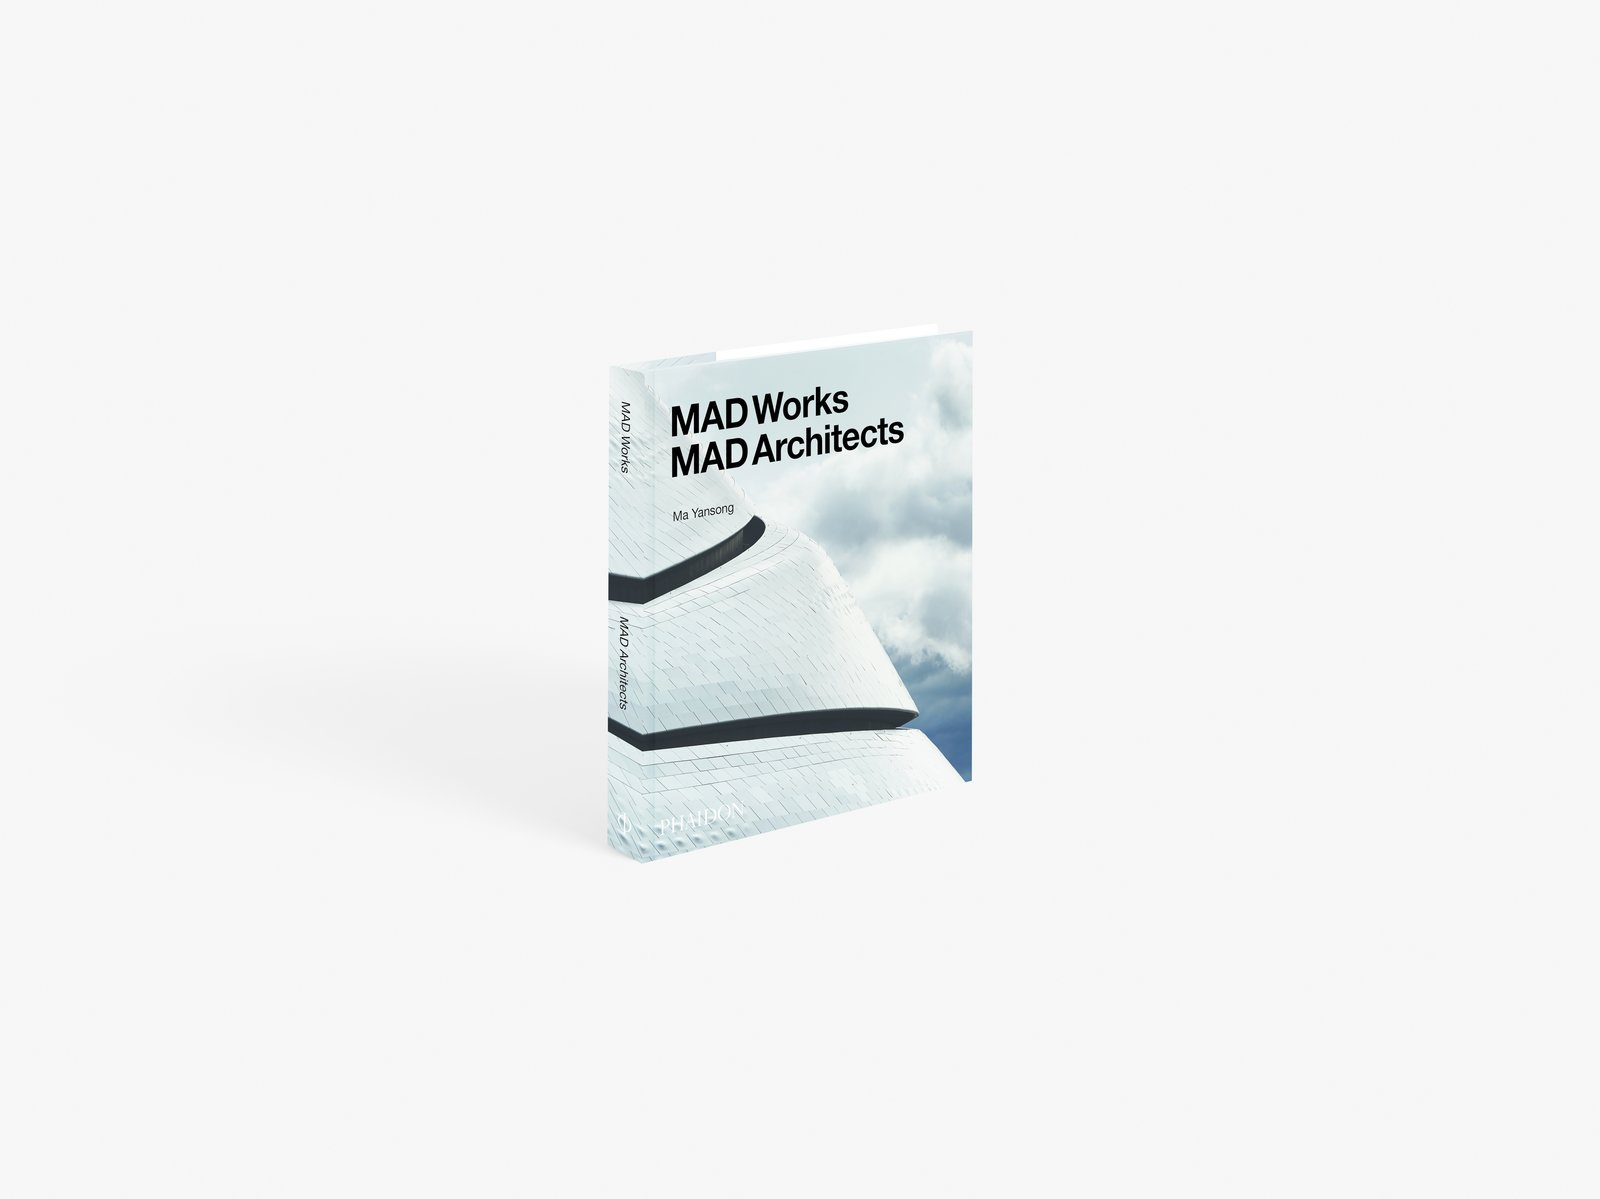 """Available in October 2016 from Phaidon, """"MAD Works"""" is the first monograph dedicated to MAD Architects, the boundary-breaking firm founded in 2004 by Ma Yansong. With offices in Beijing and Los Angeles, the firm has made a signature of its futuristic interpretations of nature.   As the architect explains in the book's introduction: """"People often ask what MAD stands for; sometimes I explain it stand for MA Design, but I like MAD (adjective) Architects better. It sounds like a group of architects with an attitude towards design and practice ... MAD is an attitude that works.""""   Discover the Fantastical Future Vision of a Beijing Architect"""